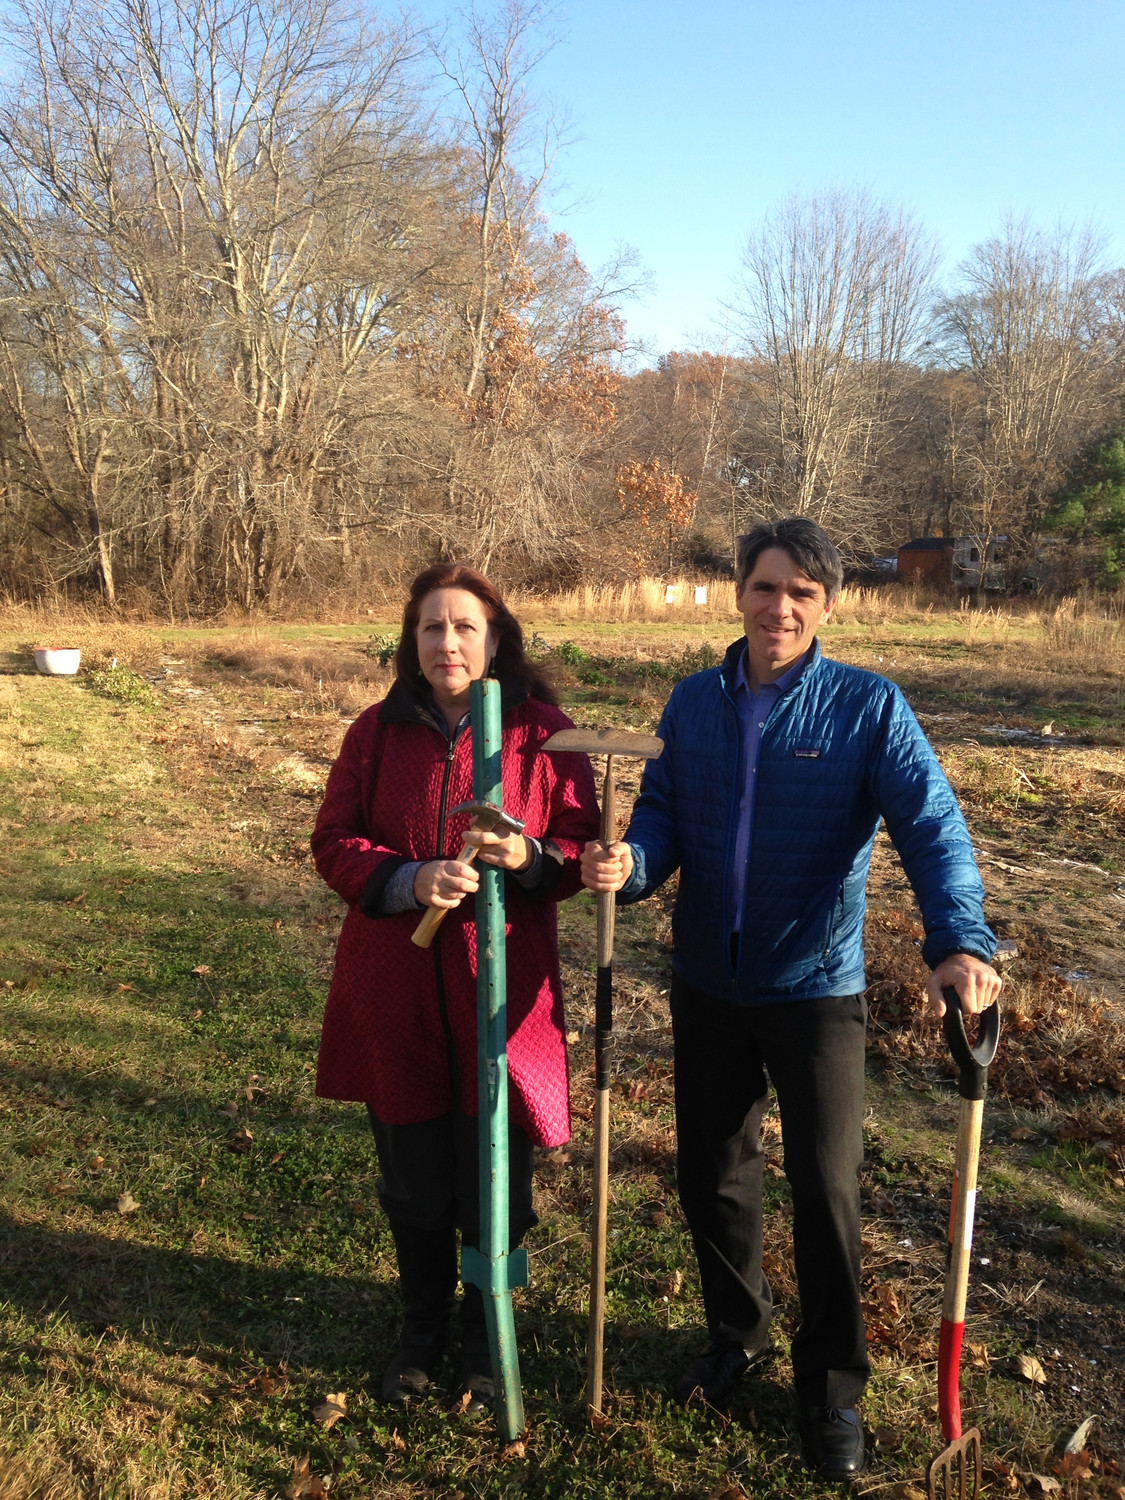 Tim Faulkner, right, and Candace Clavin, volunteers with the Barrington Farm School, at the site of the working farm they hope to buy and preserve.